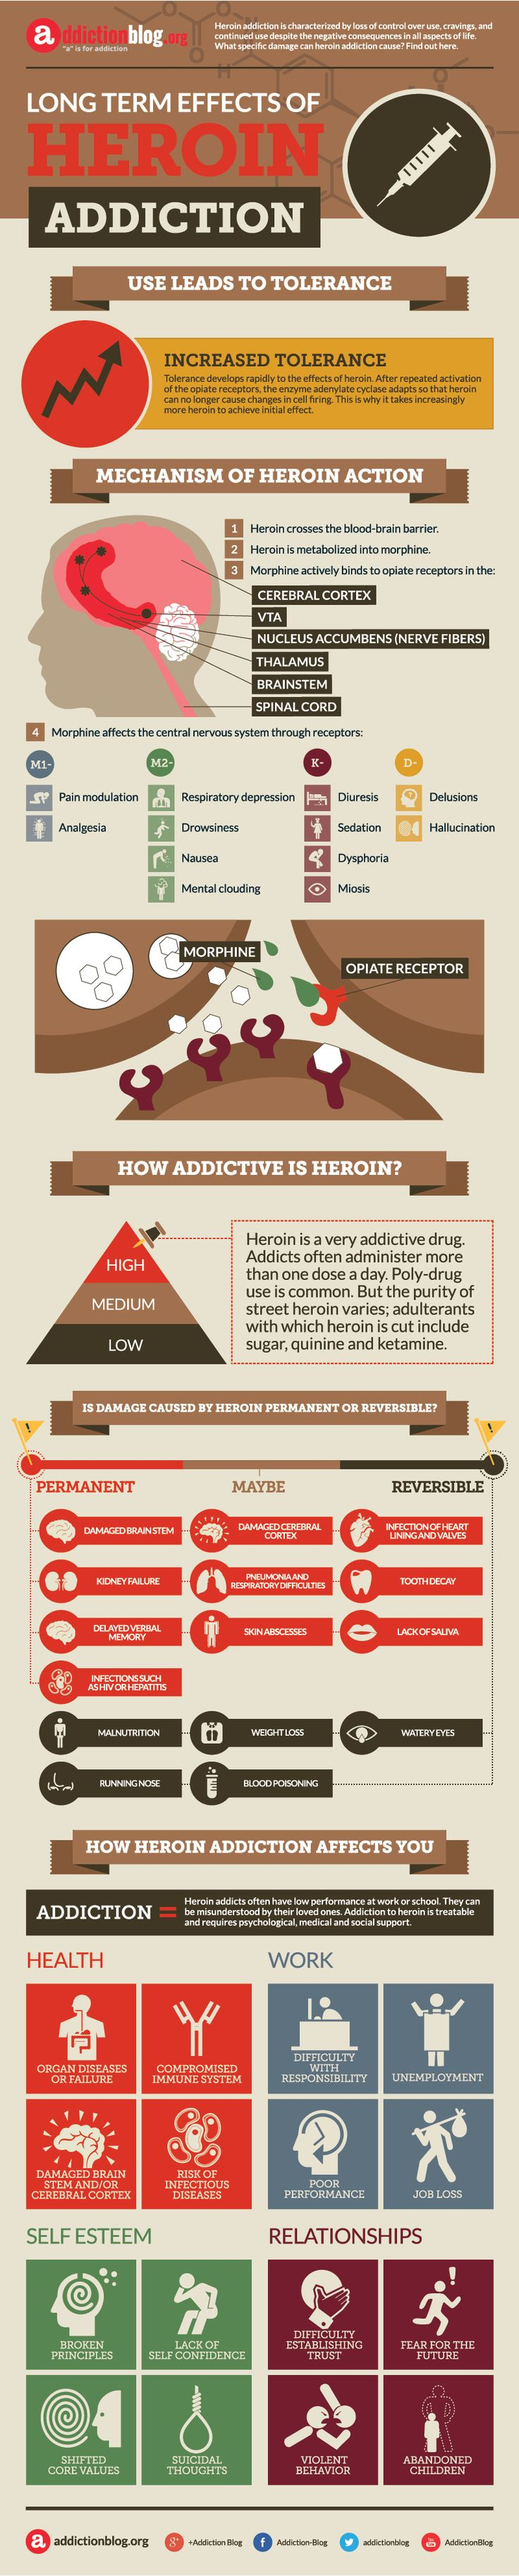 Long term effects of heroin addiction (INFOGRAPHIC) | Addiction Blog